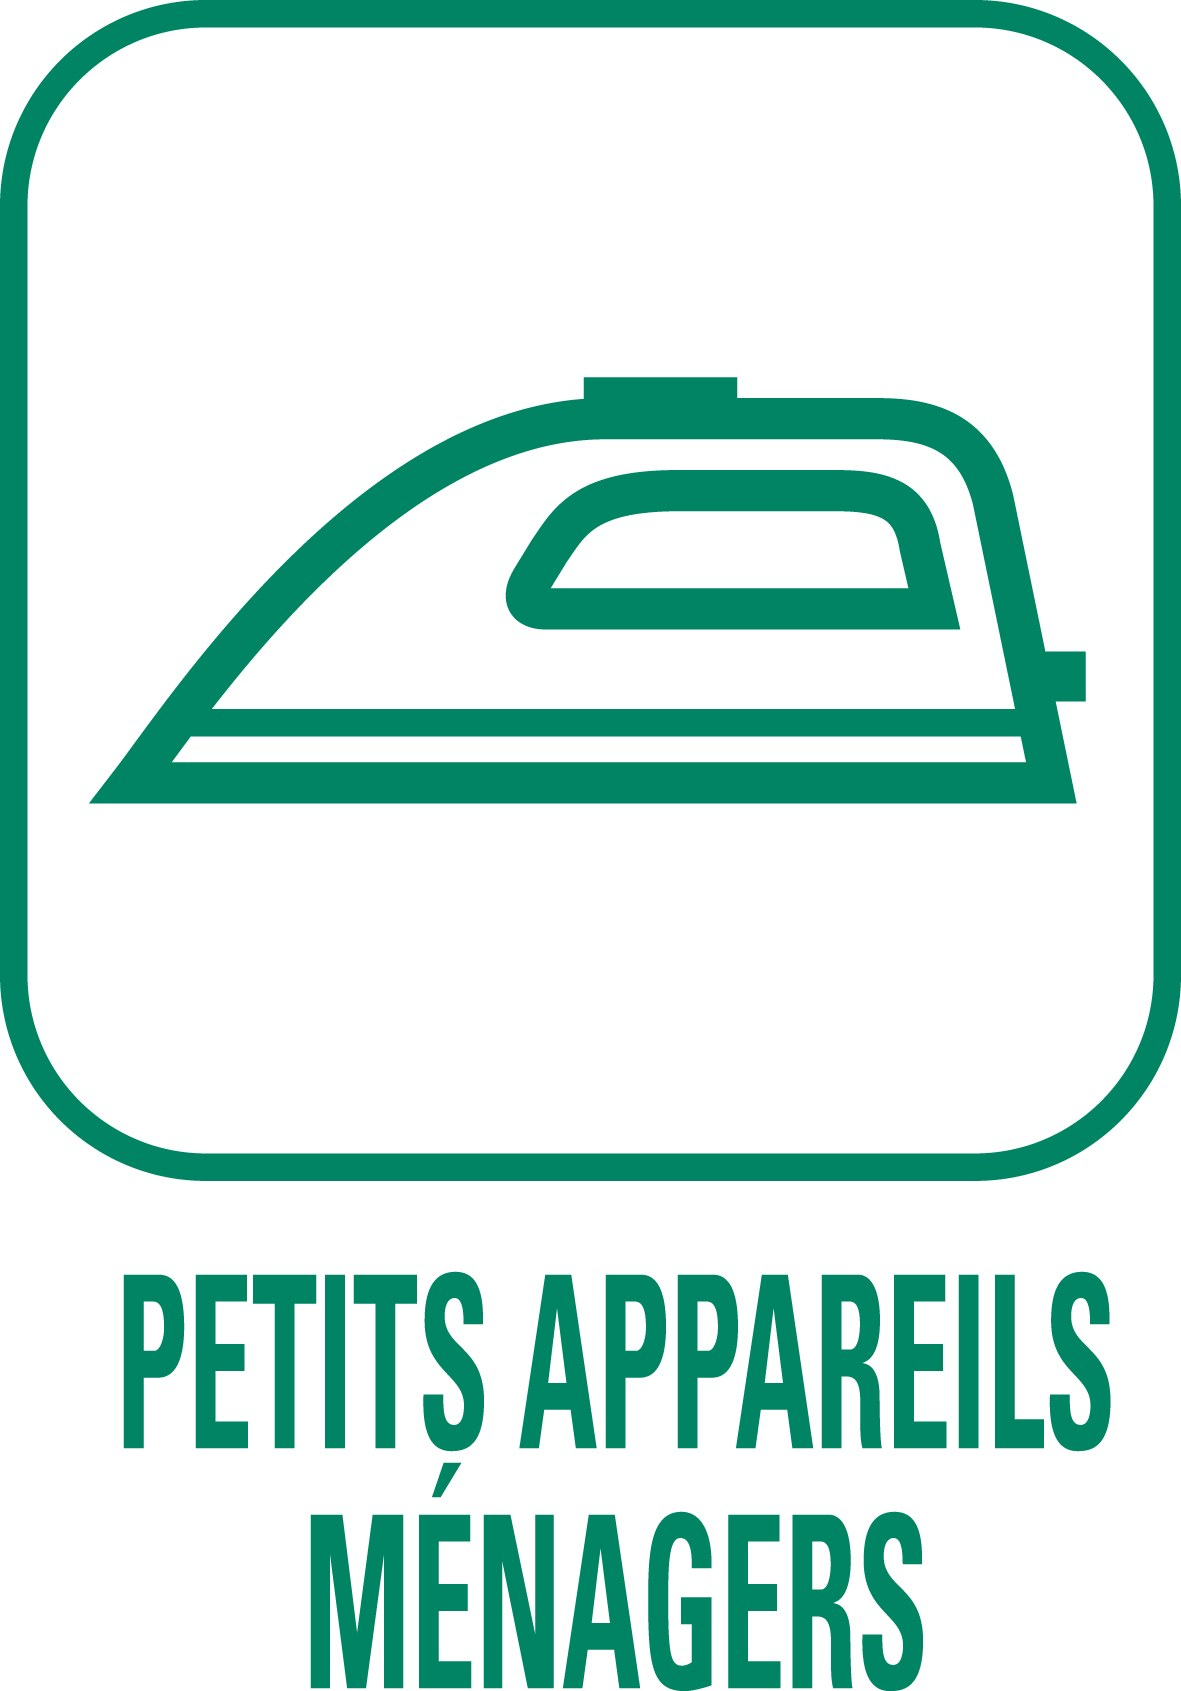 r370 9 petits appareils menagers